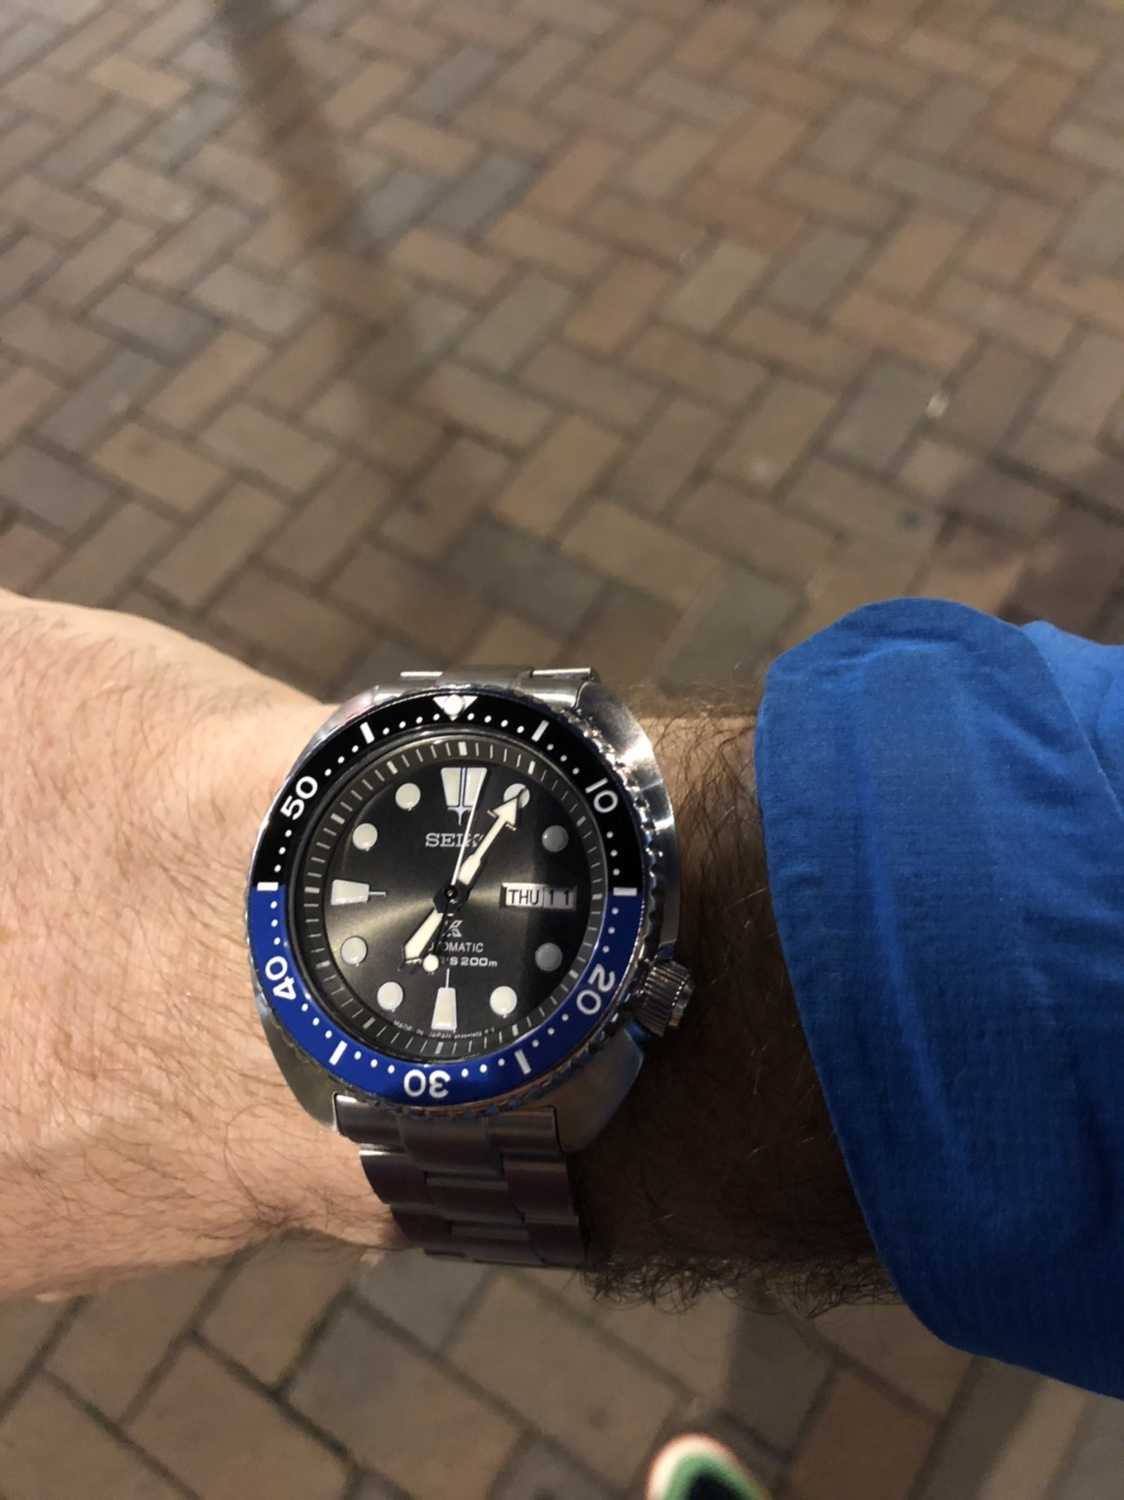 Is there a Seiko Mods thread at all?